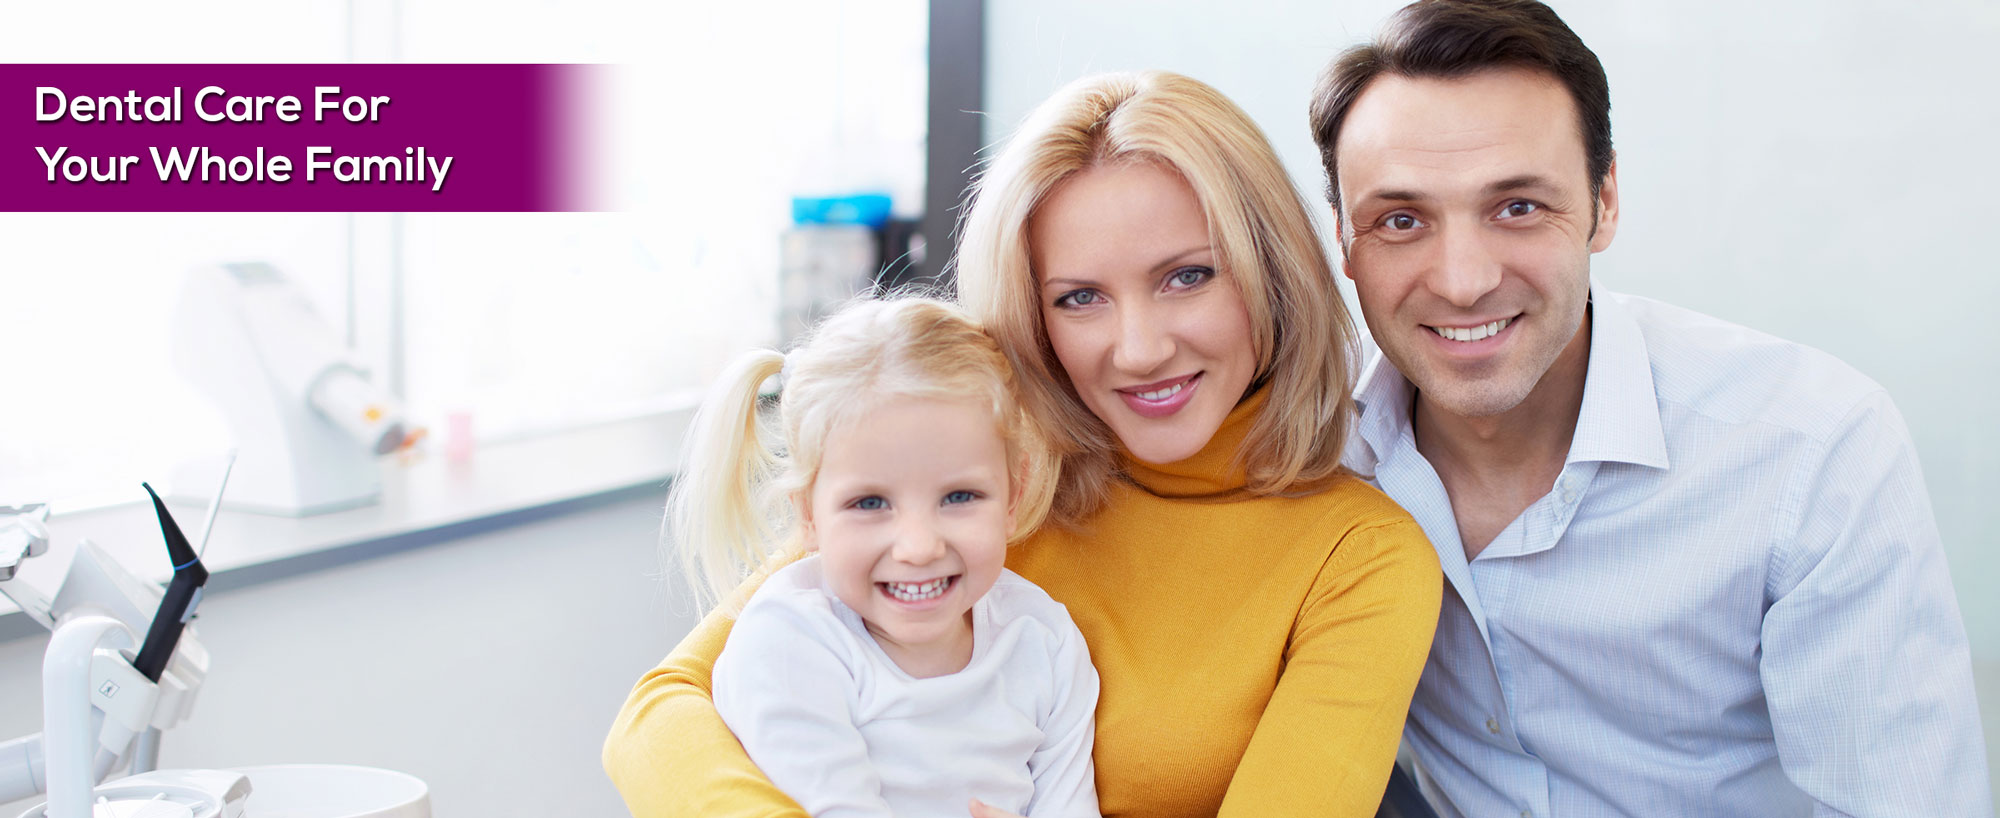 Affordable Dental Care For Family